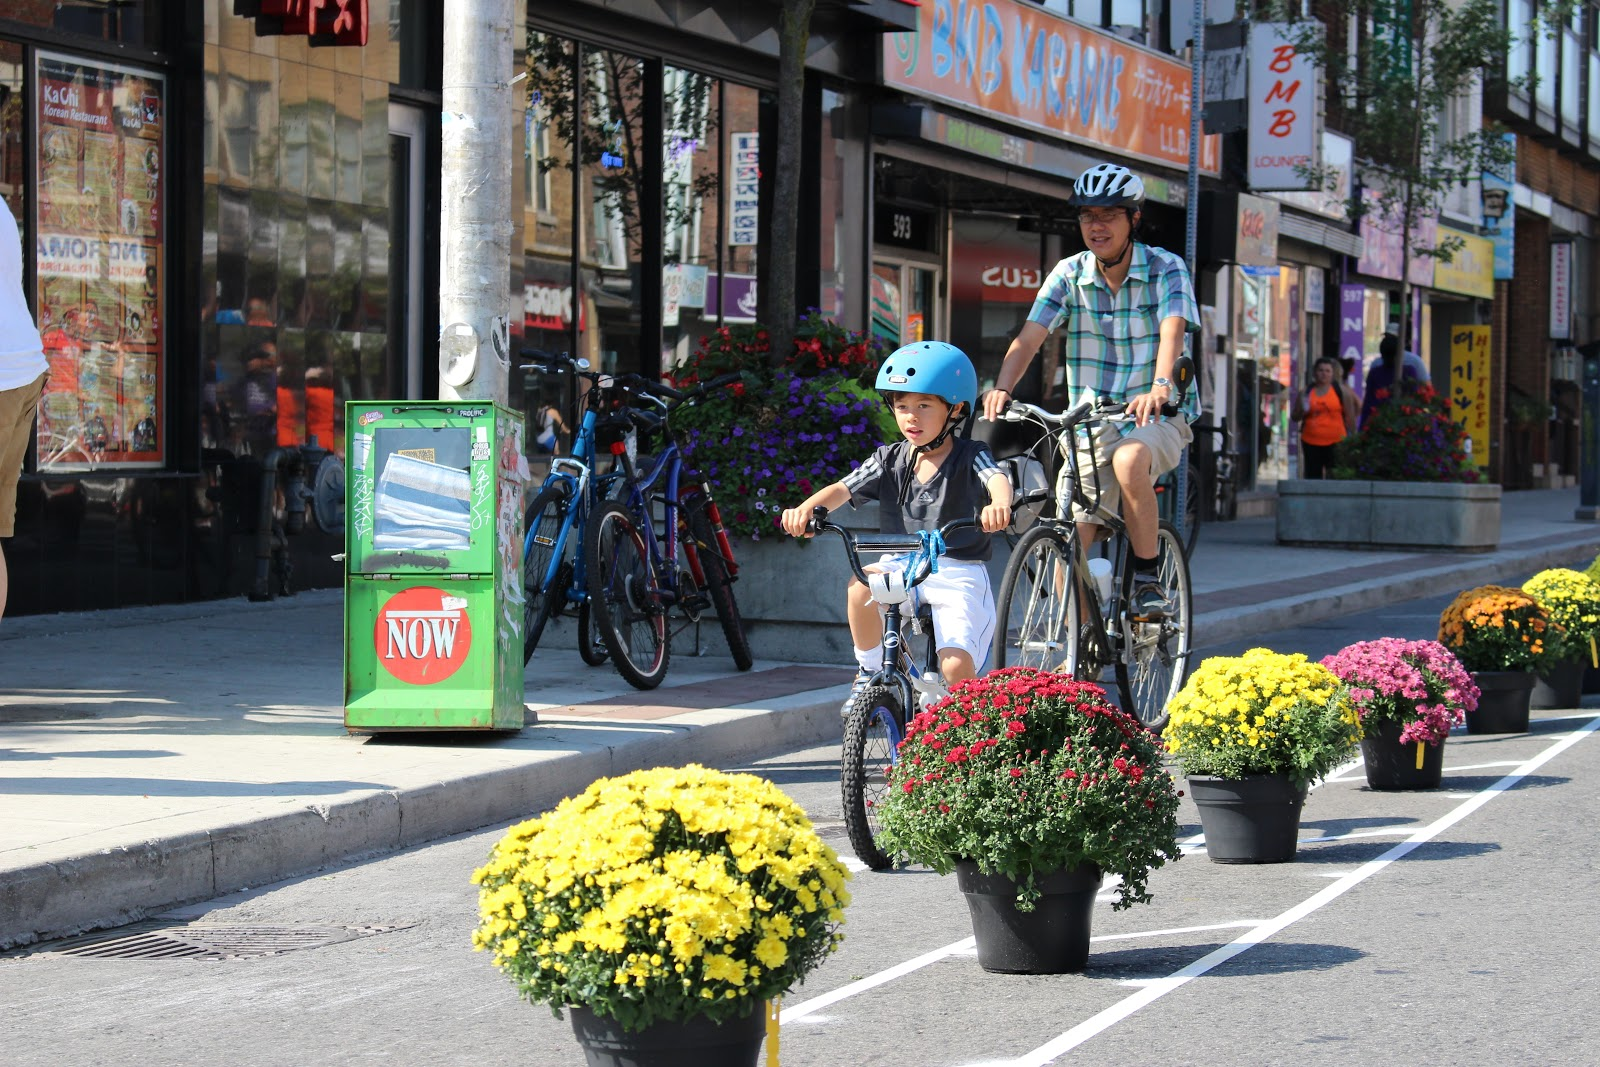 Bloor Bike Lane pop up at open streets - jared's photo.jpg